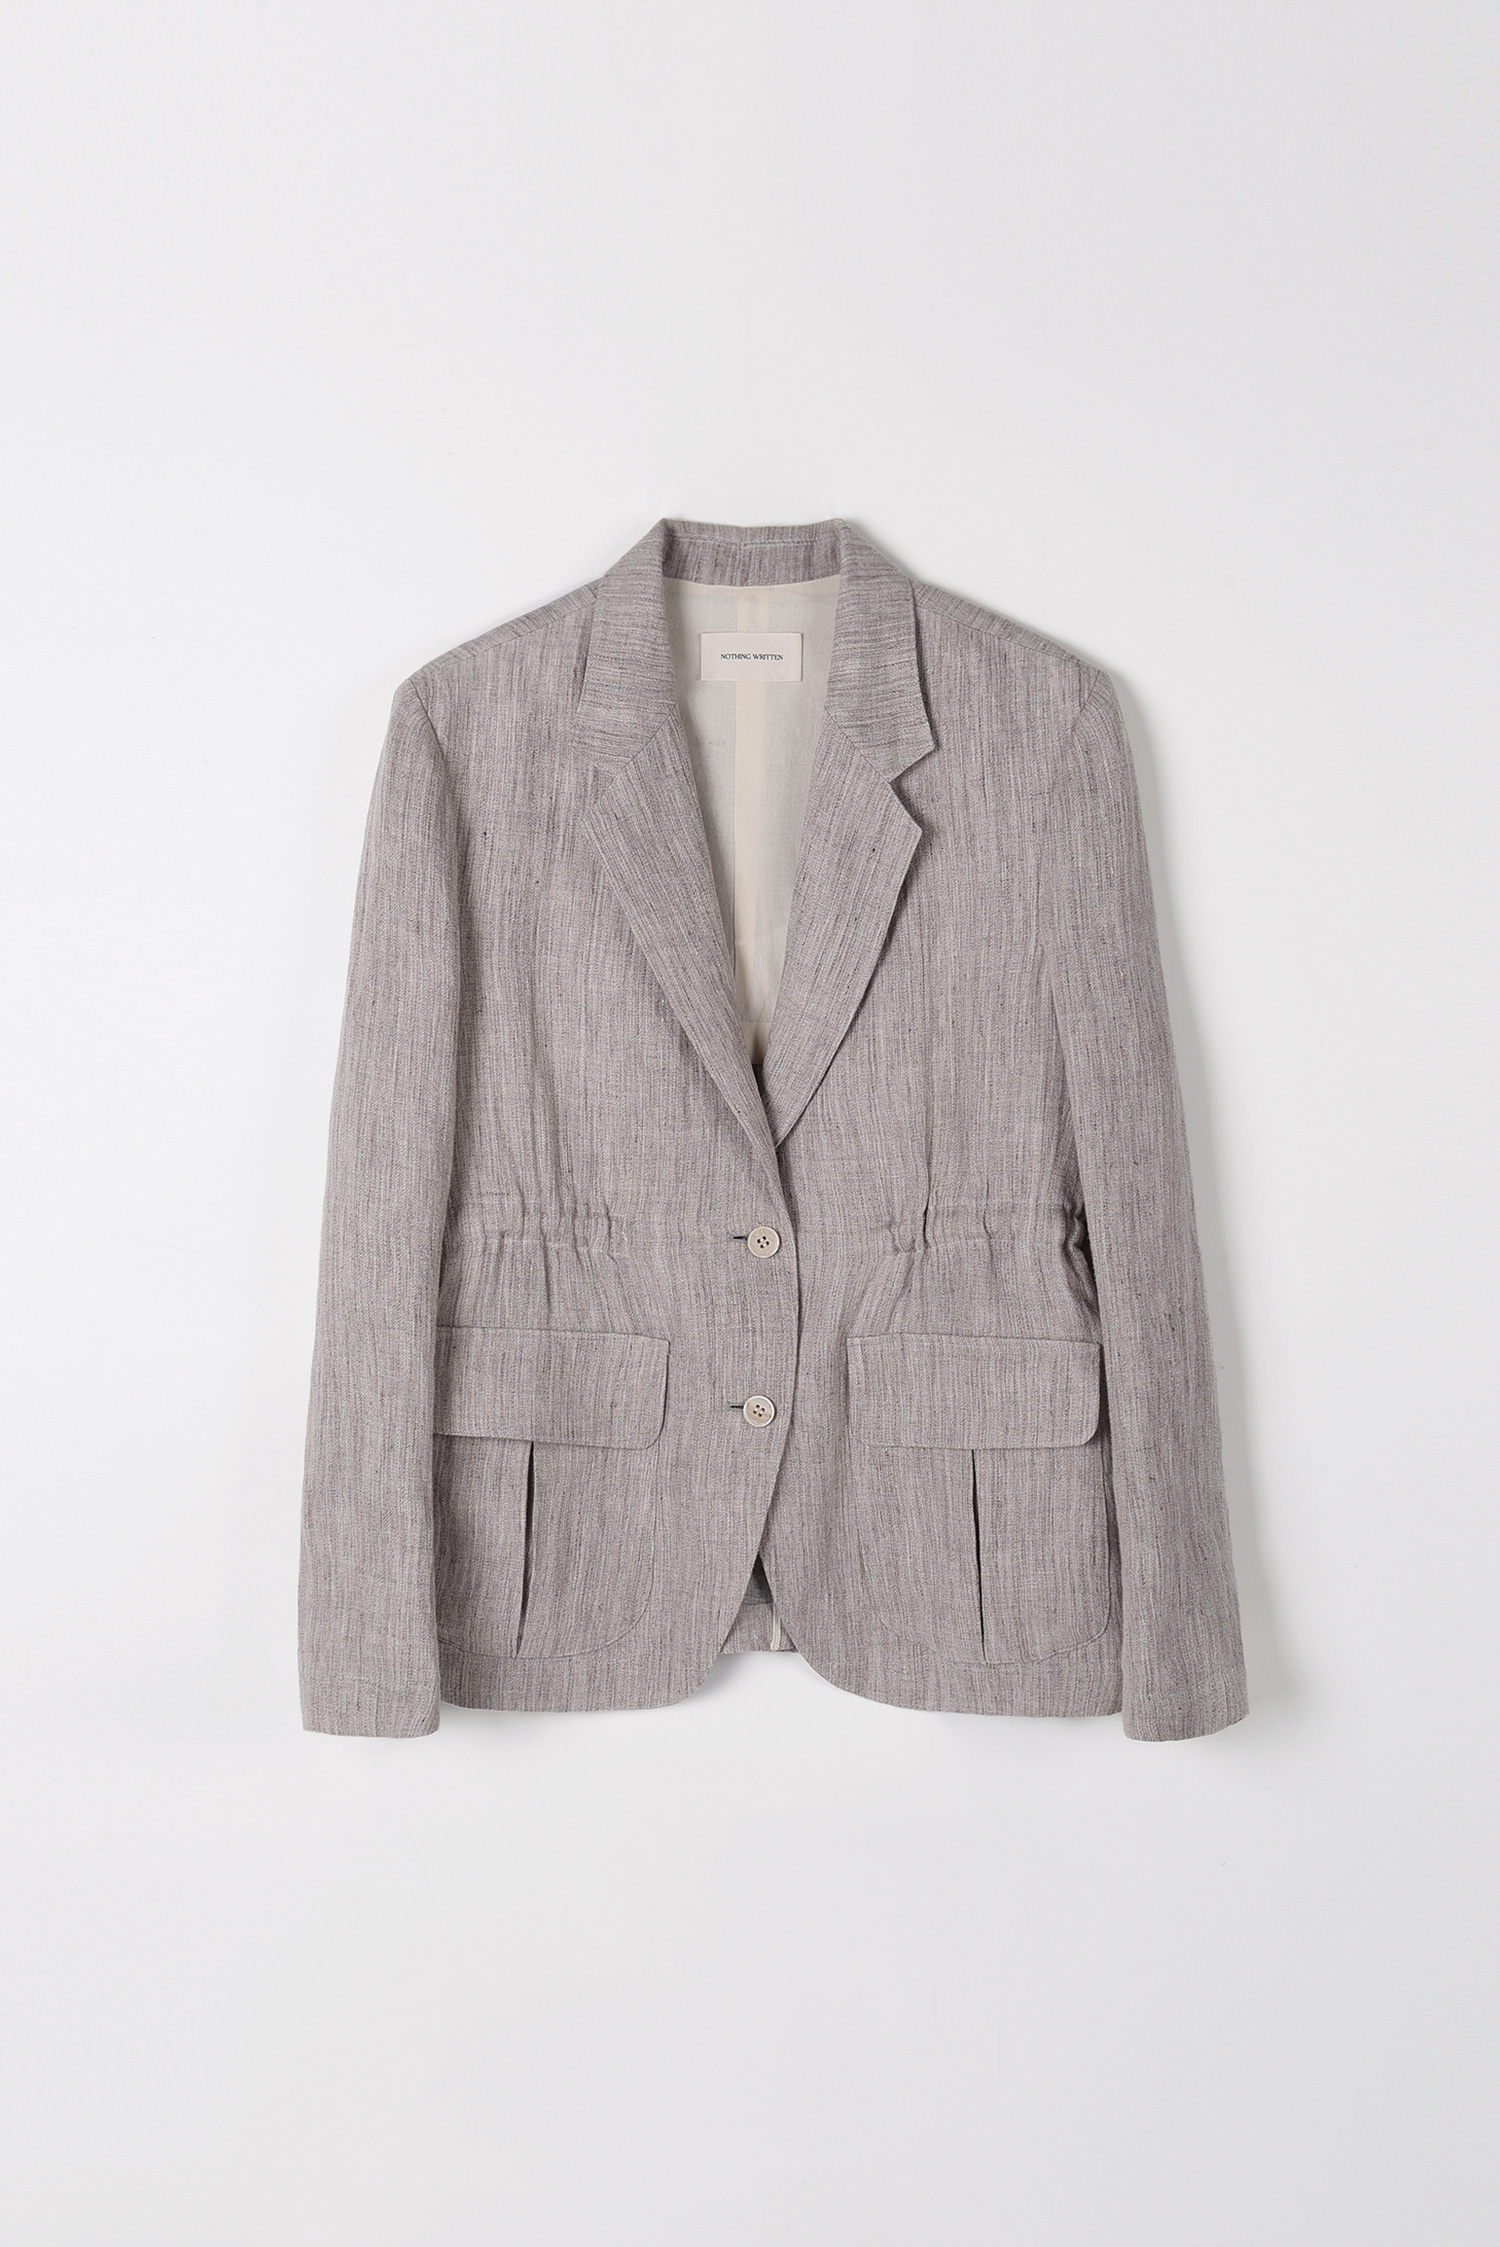 Safari linen jacket (toast)